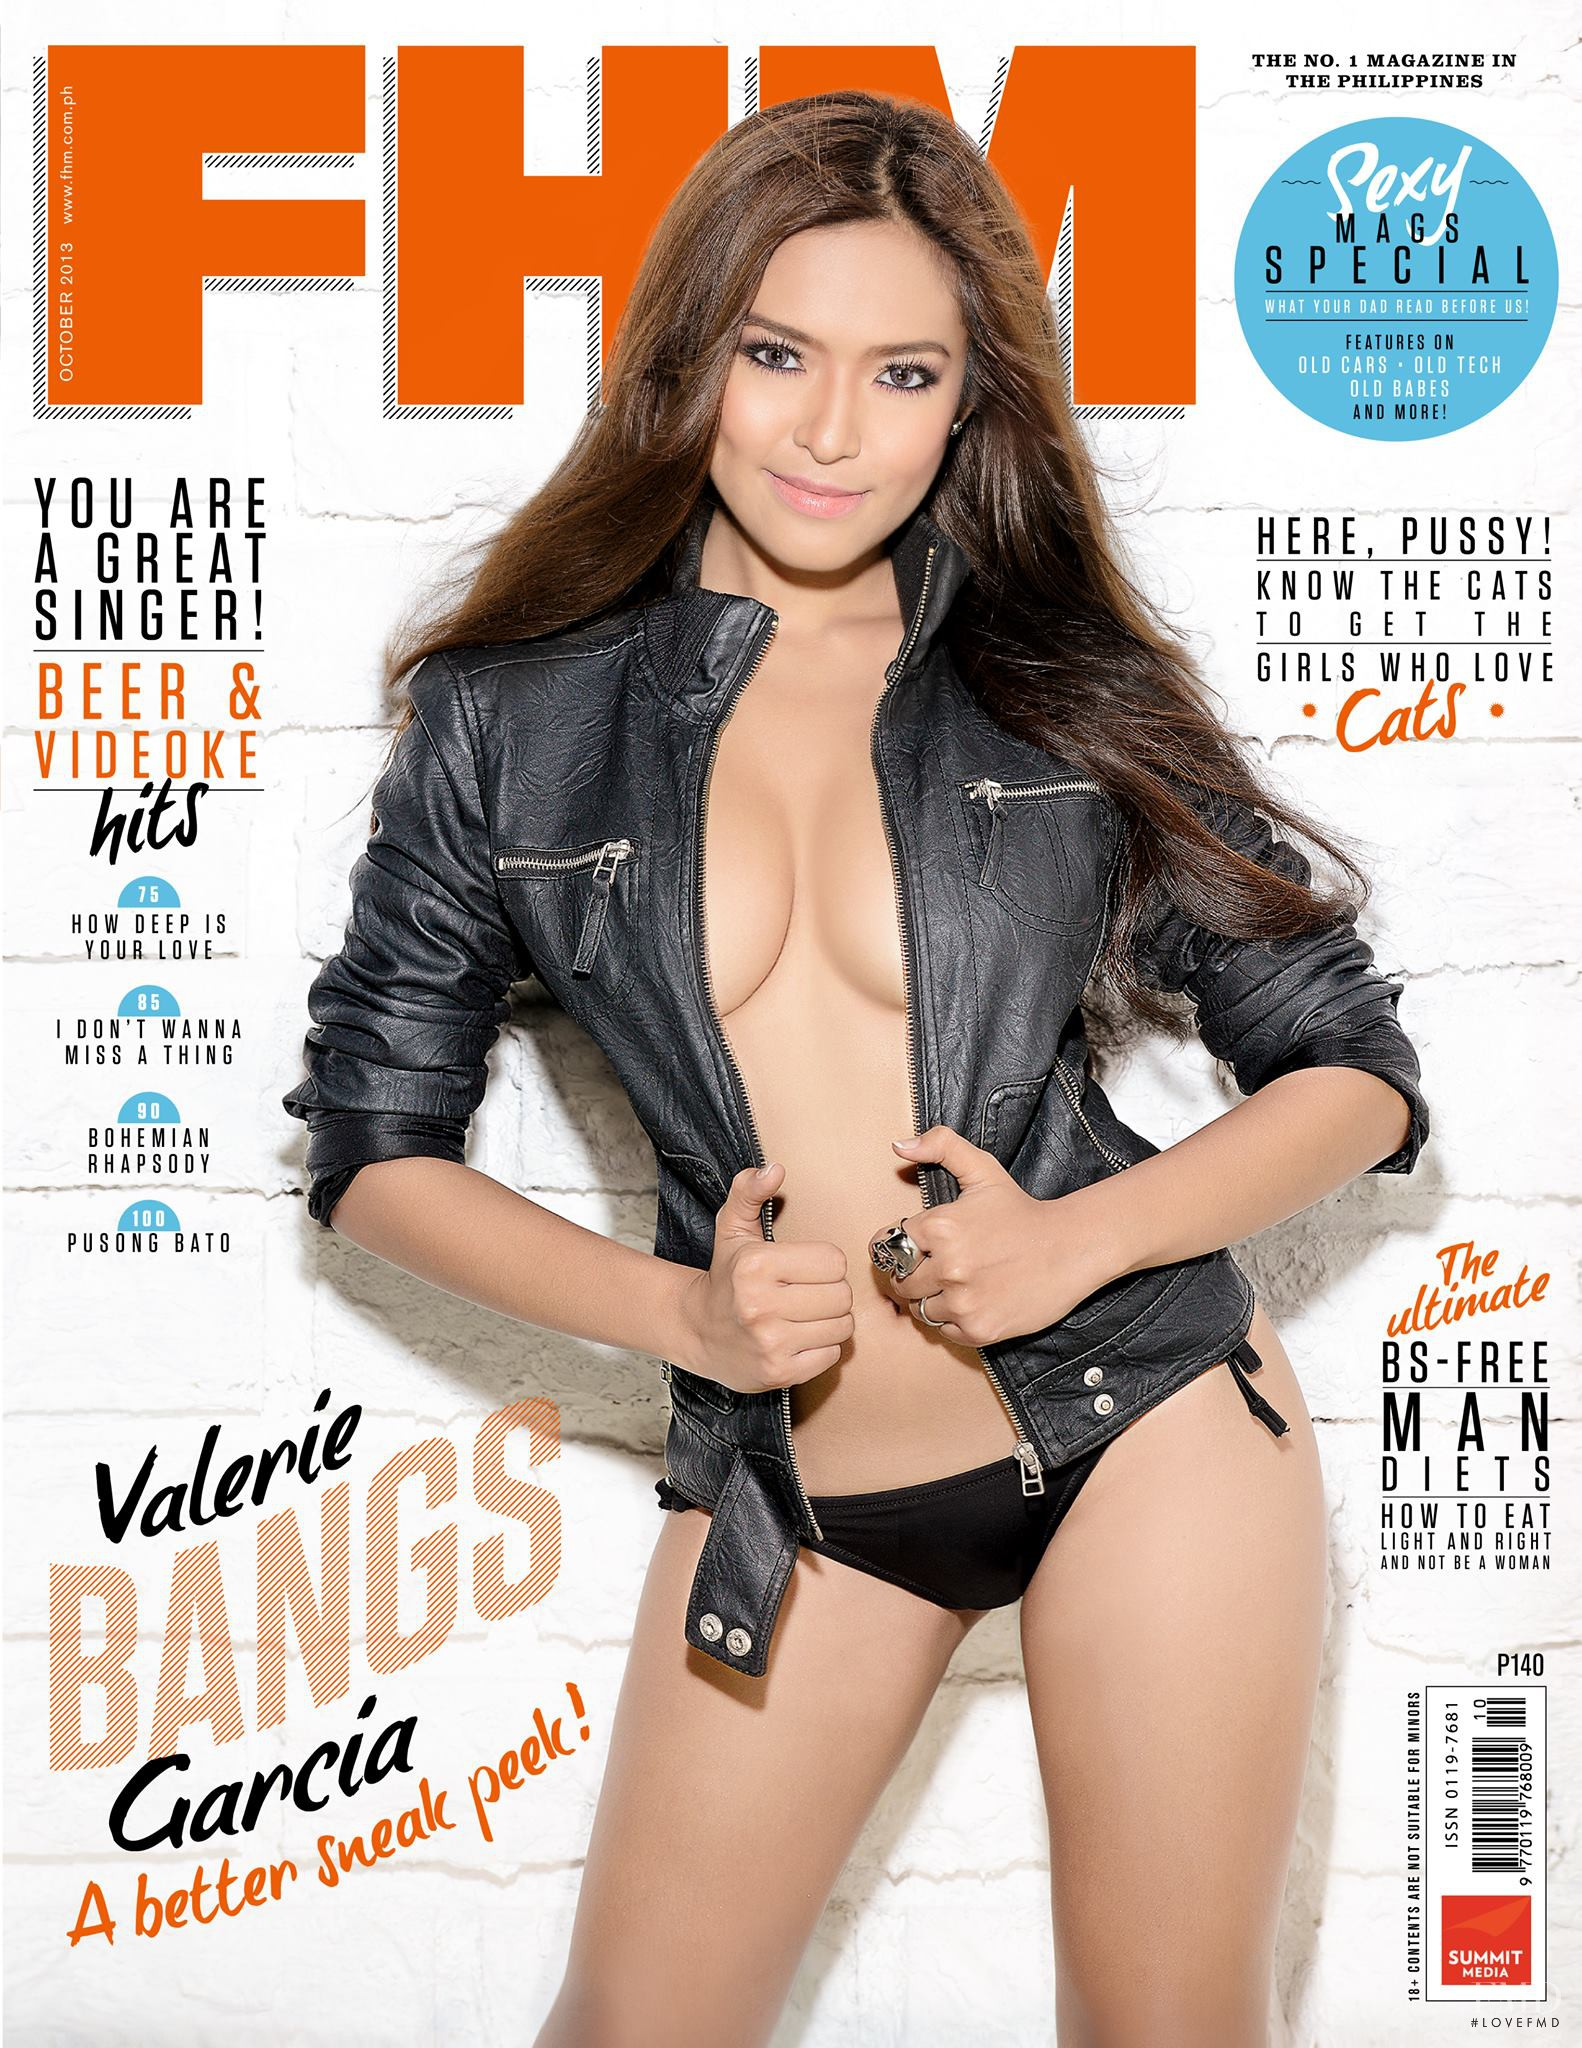 Cover Of FHM Philippines With Valerie Bangs Garcia